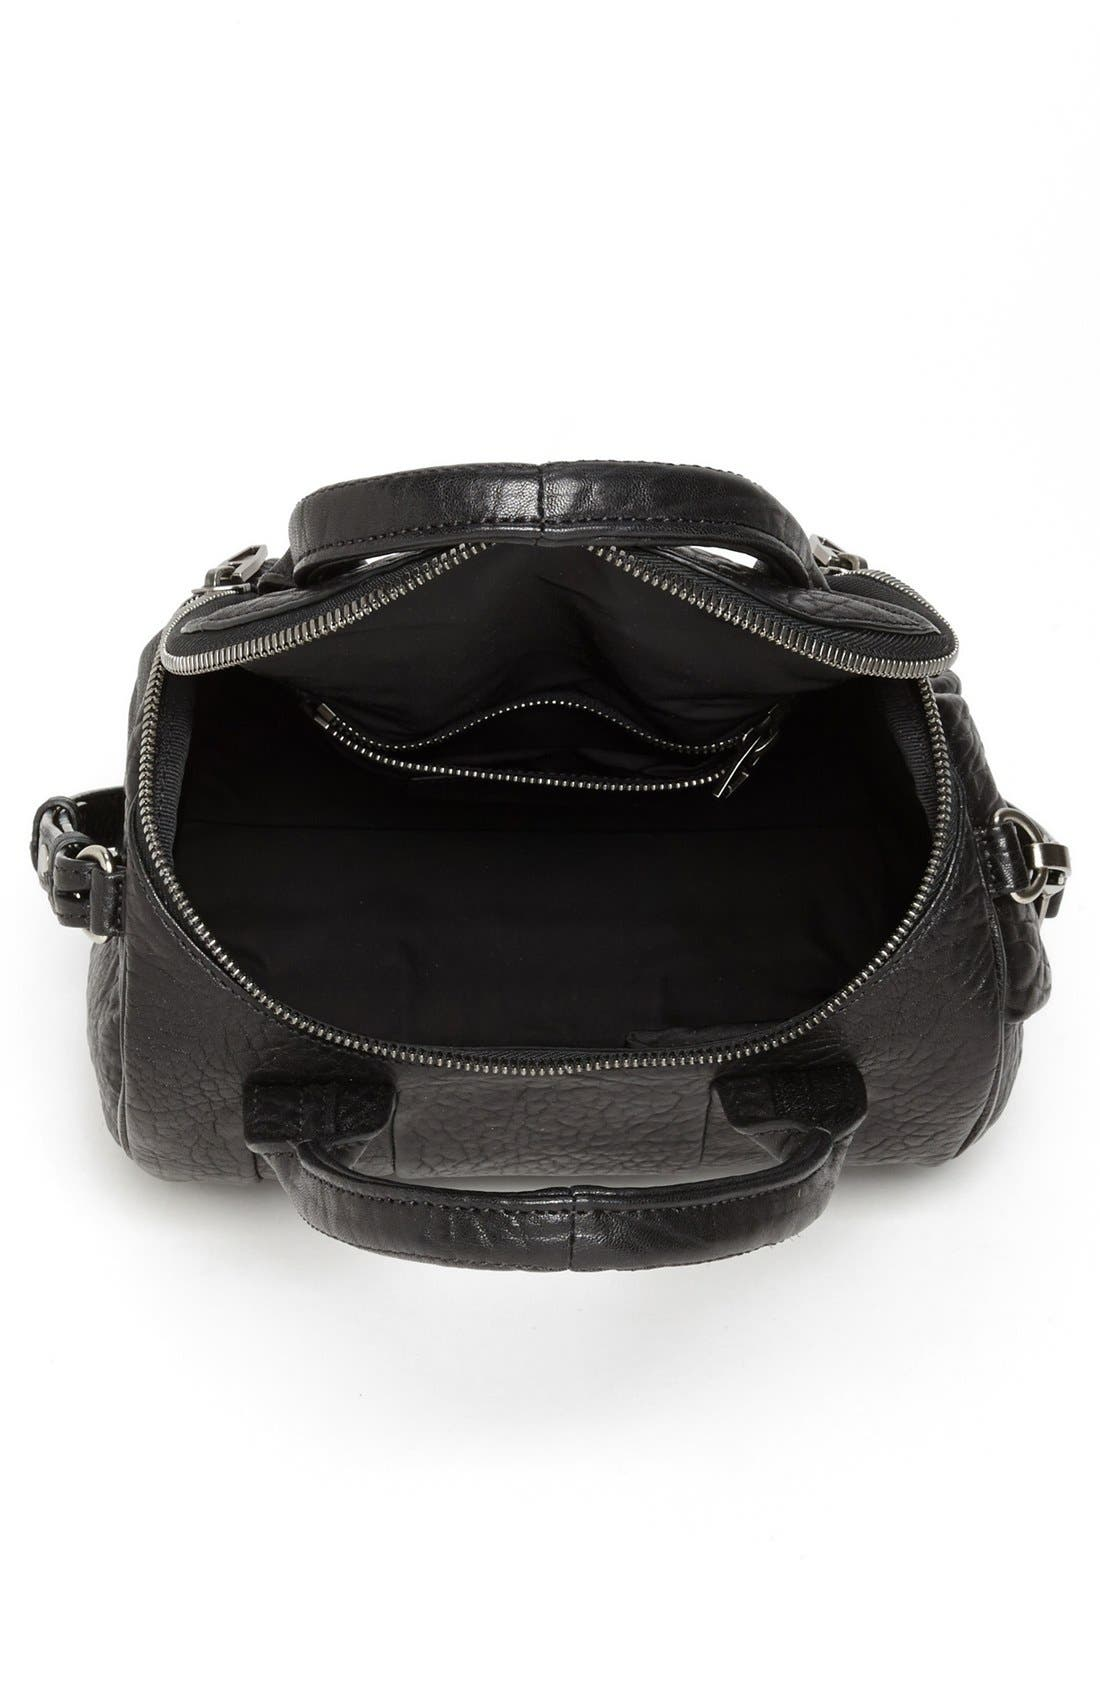 Alternate Image 3  - Alexander Wang 'Rockie - Black Nickel' Leather Crossbody Satchel